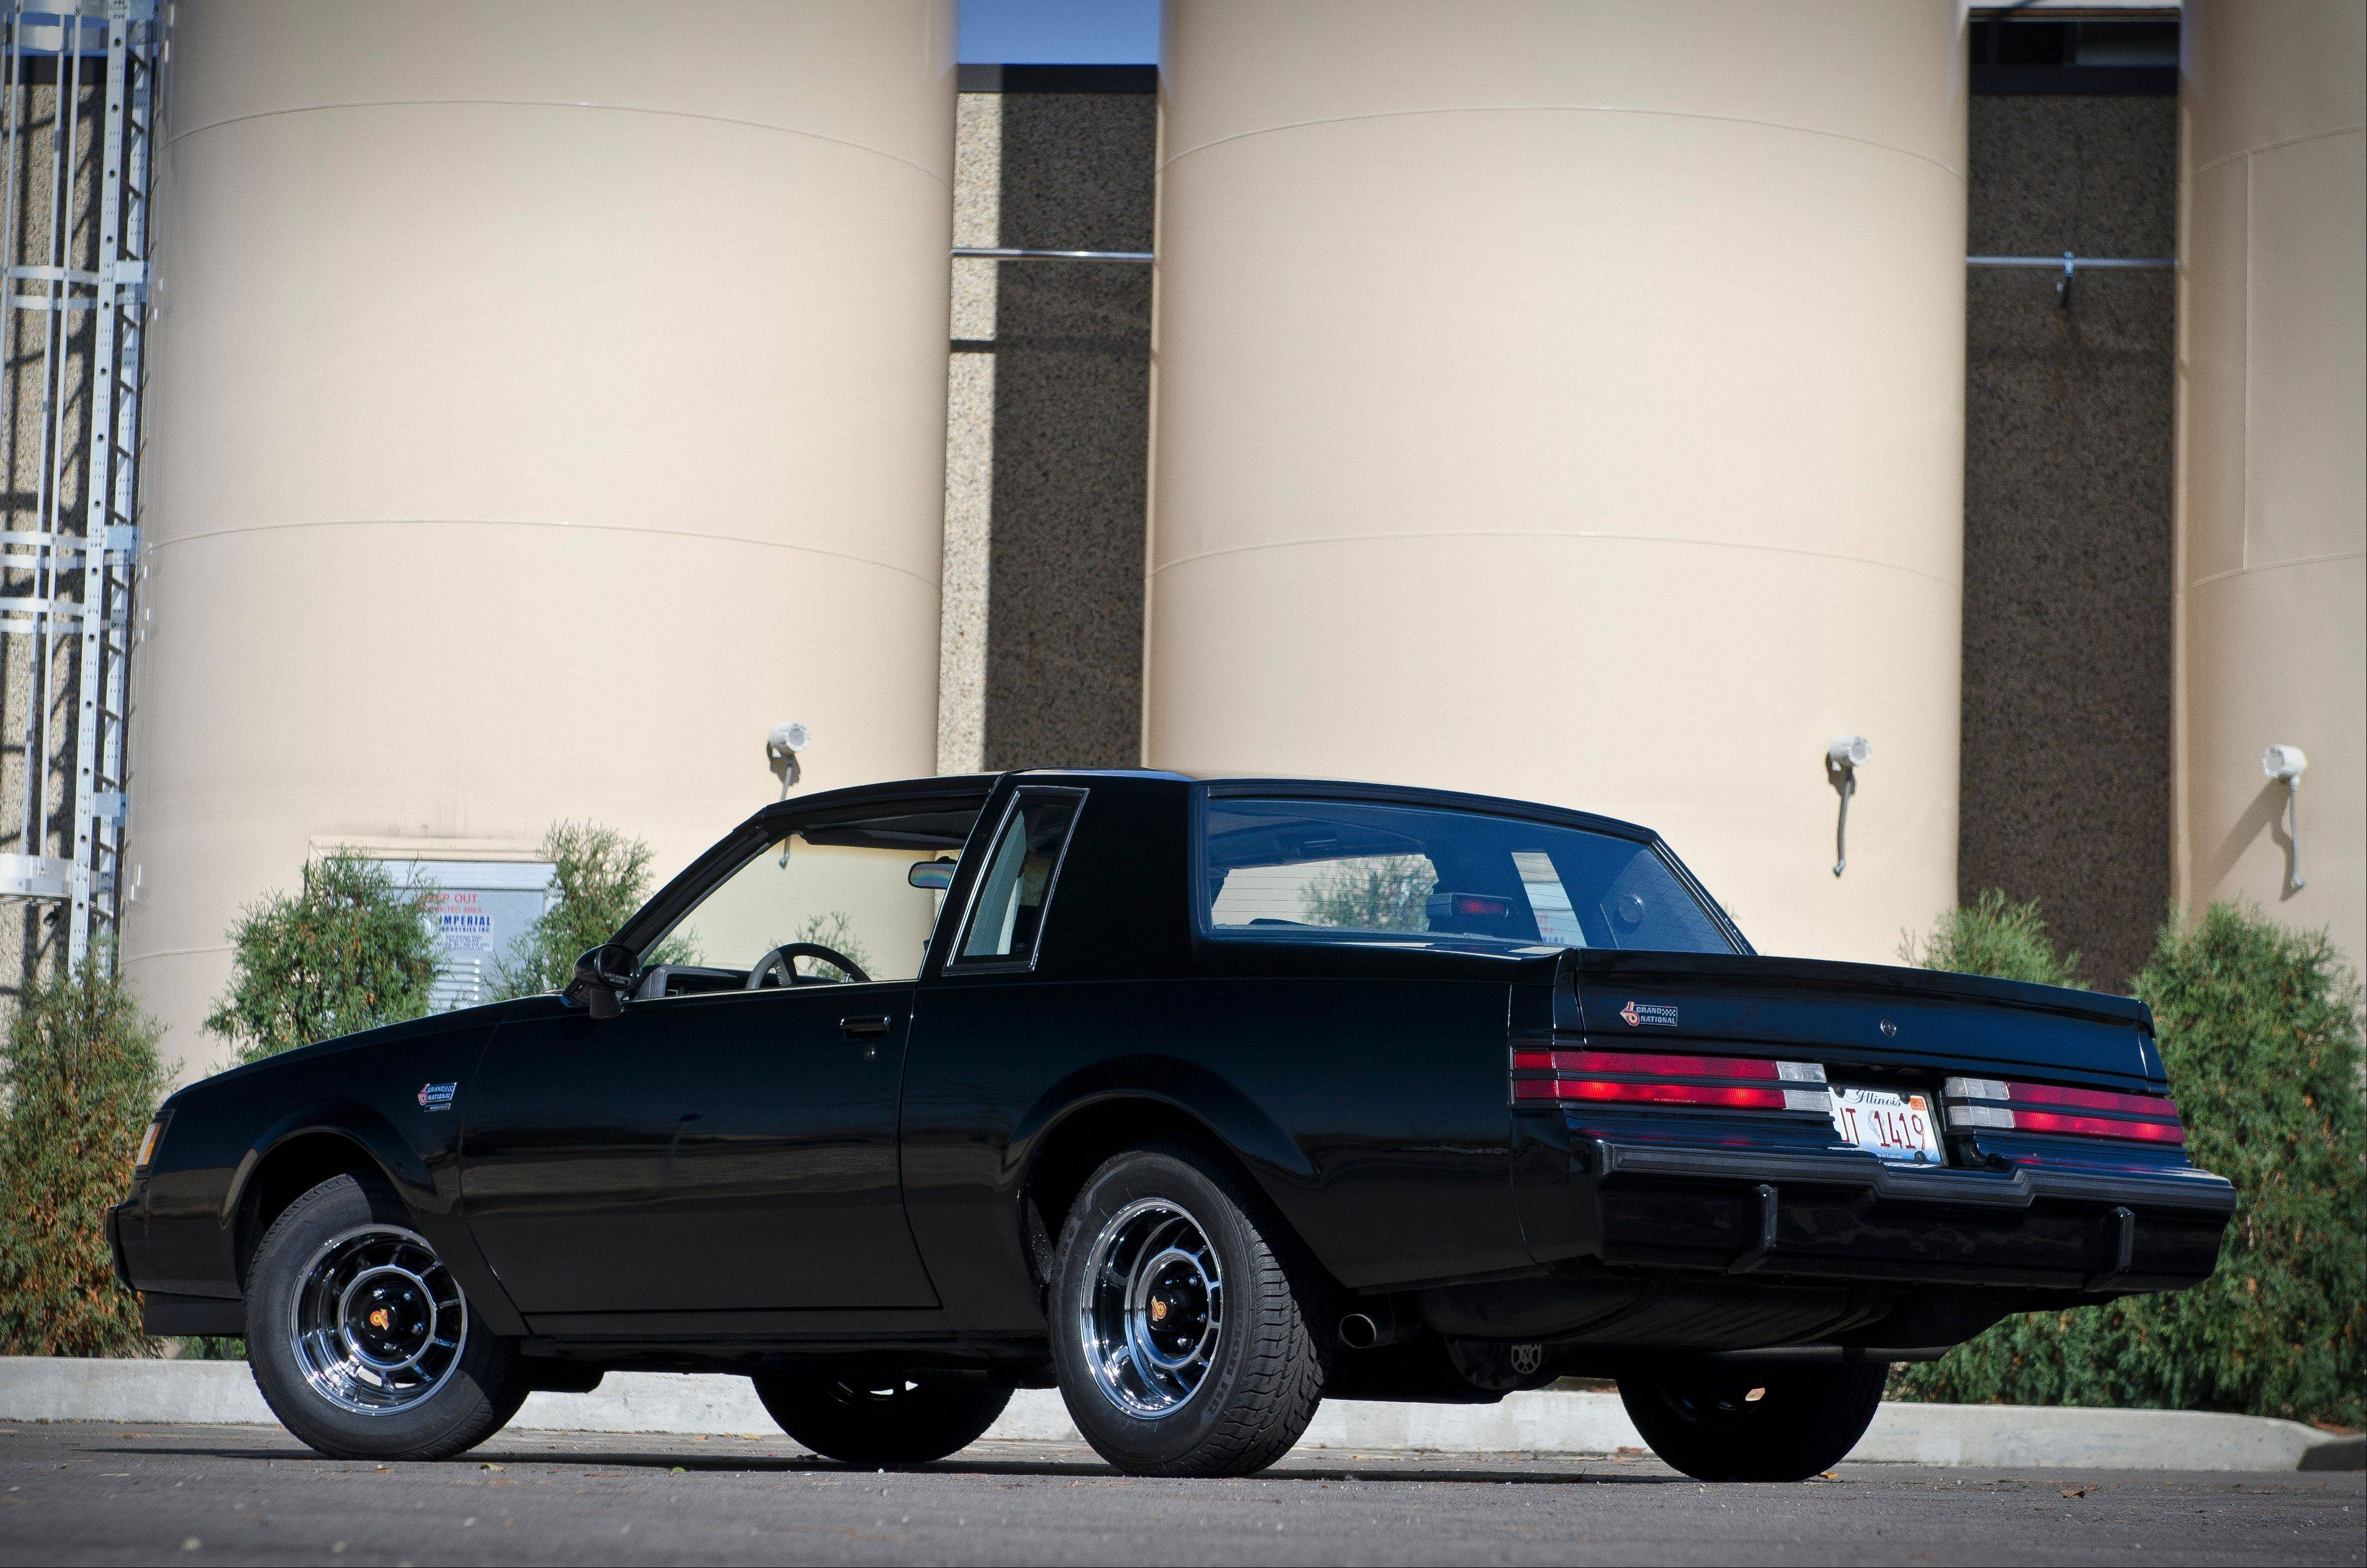 The stealthy black 1987 Grand National was completed on Oct. 28 according to its build sheet. An options list under the trunk lid is partially written in French because the auto was destined for a Canadian dealer.